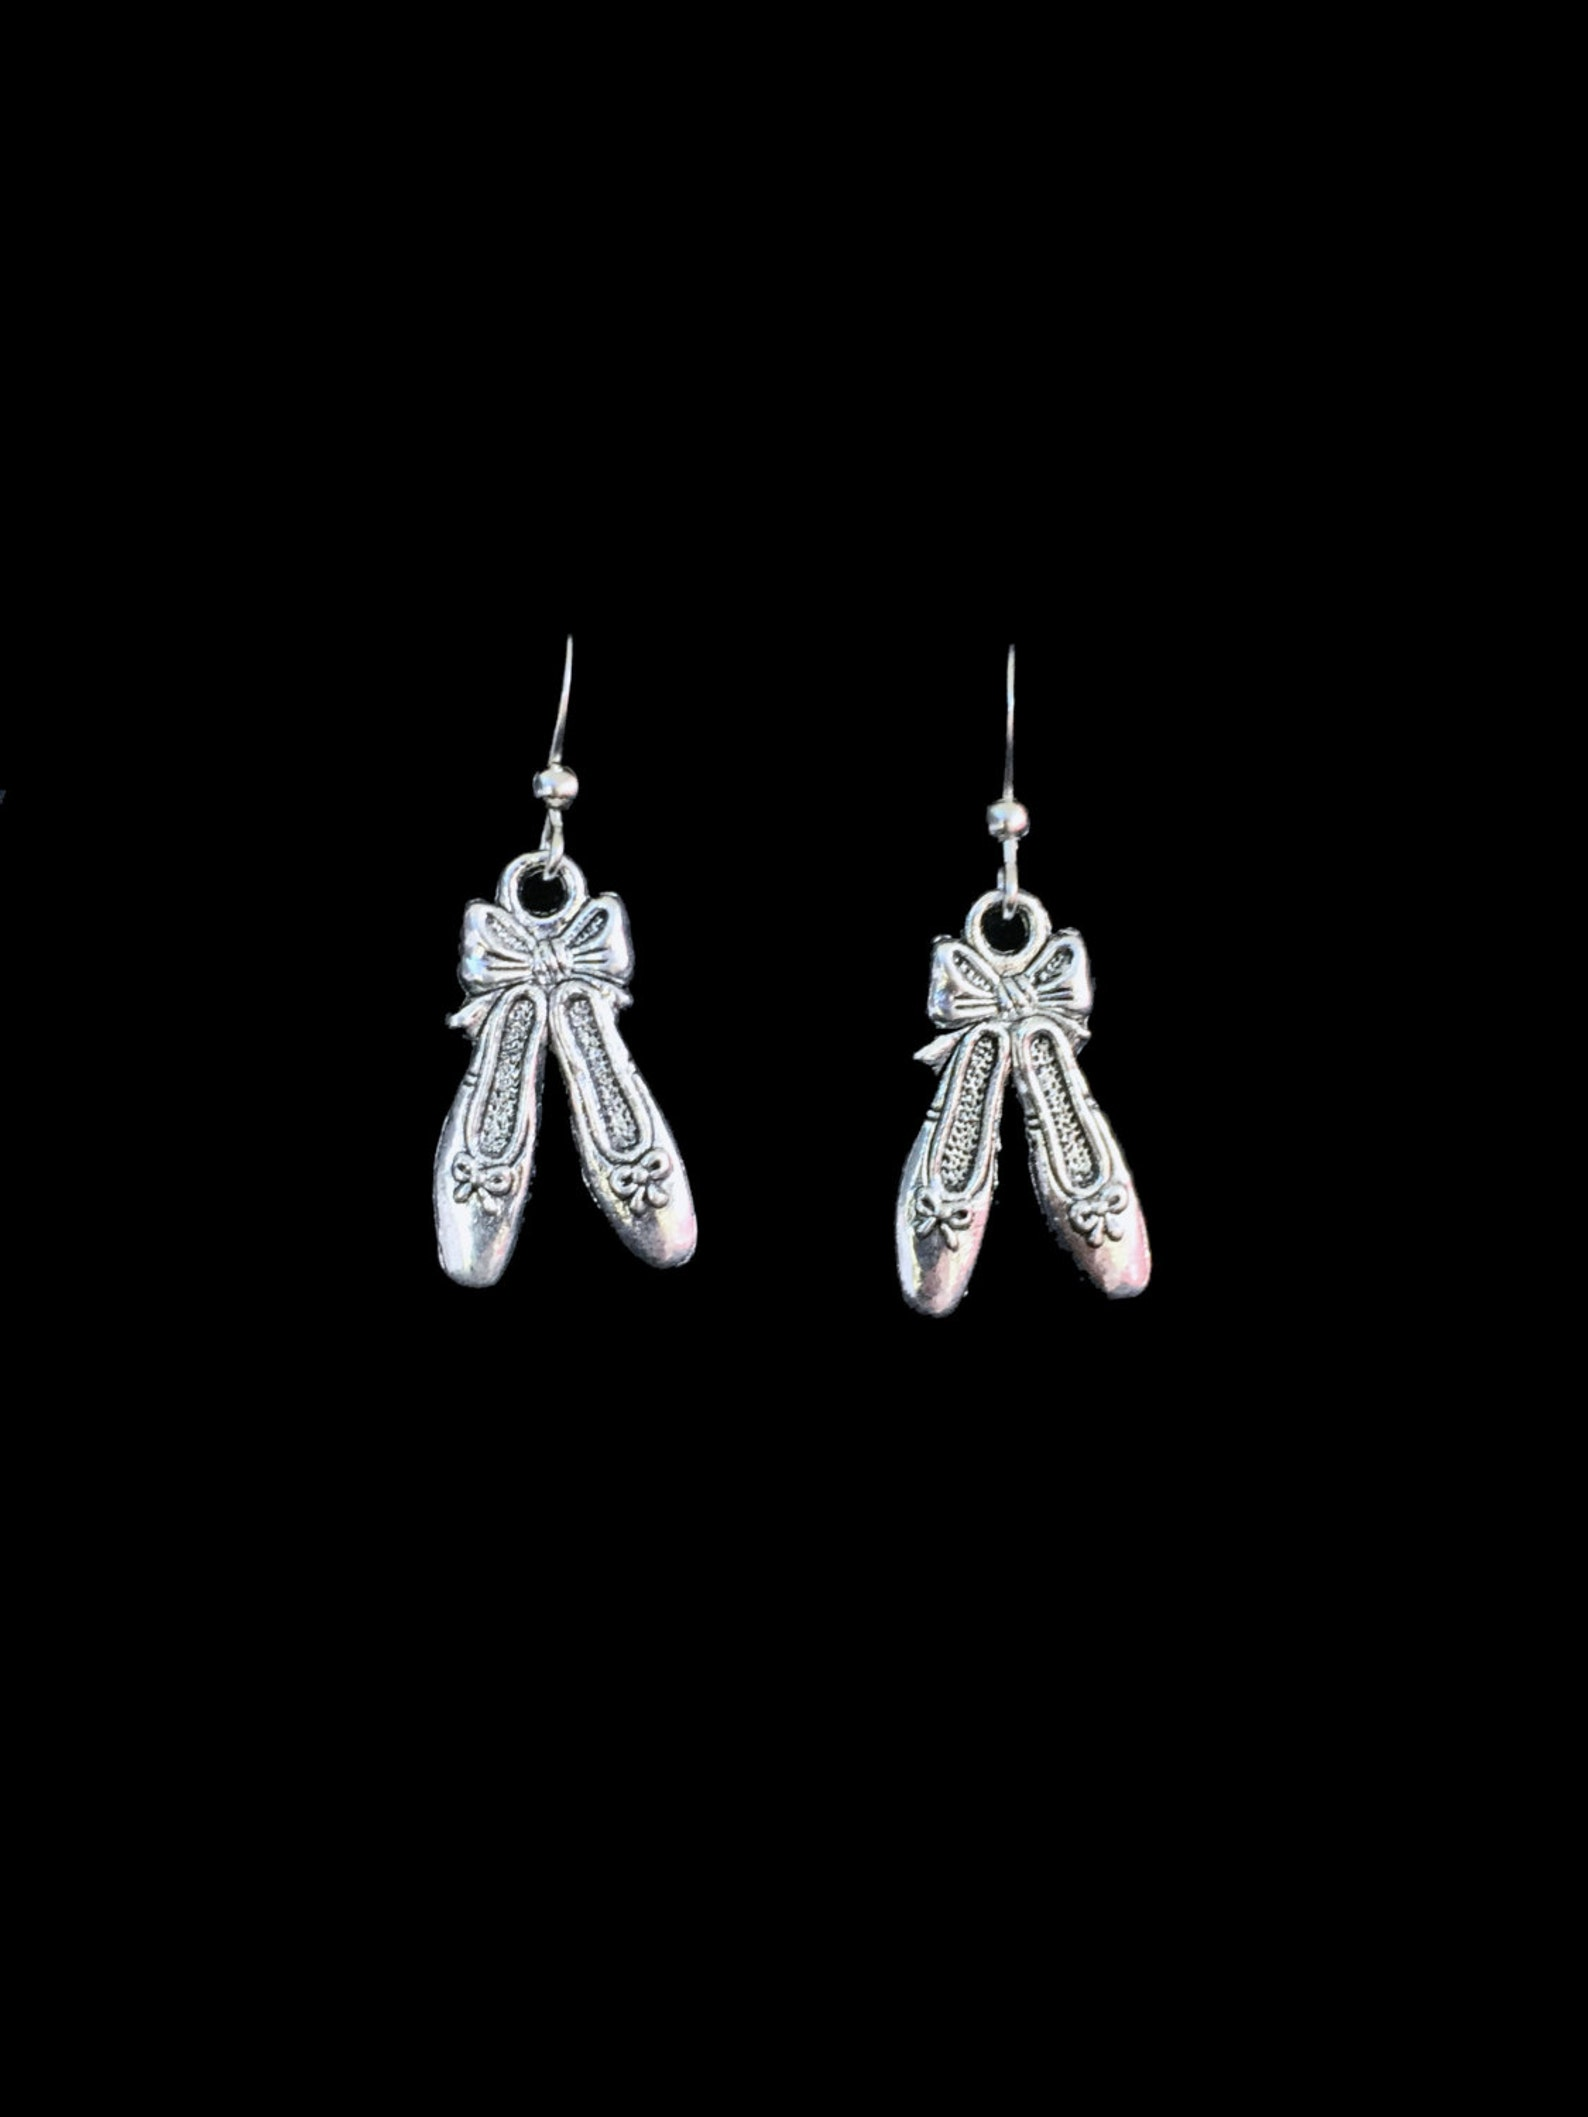 ballet slipper dangle earrings ballerina dancing shoes hook earring antique silver jewelry fashion jewelry dance jewelry dancer